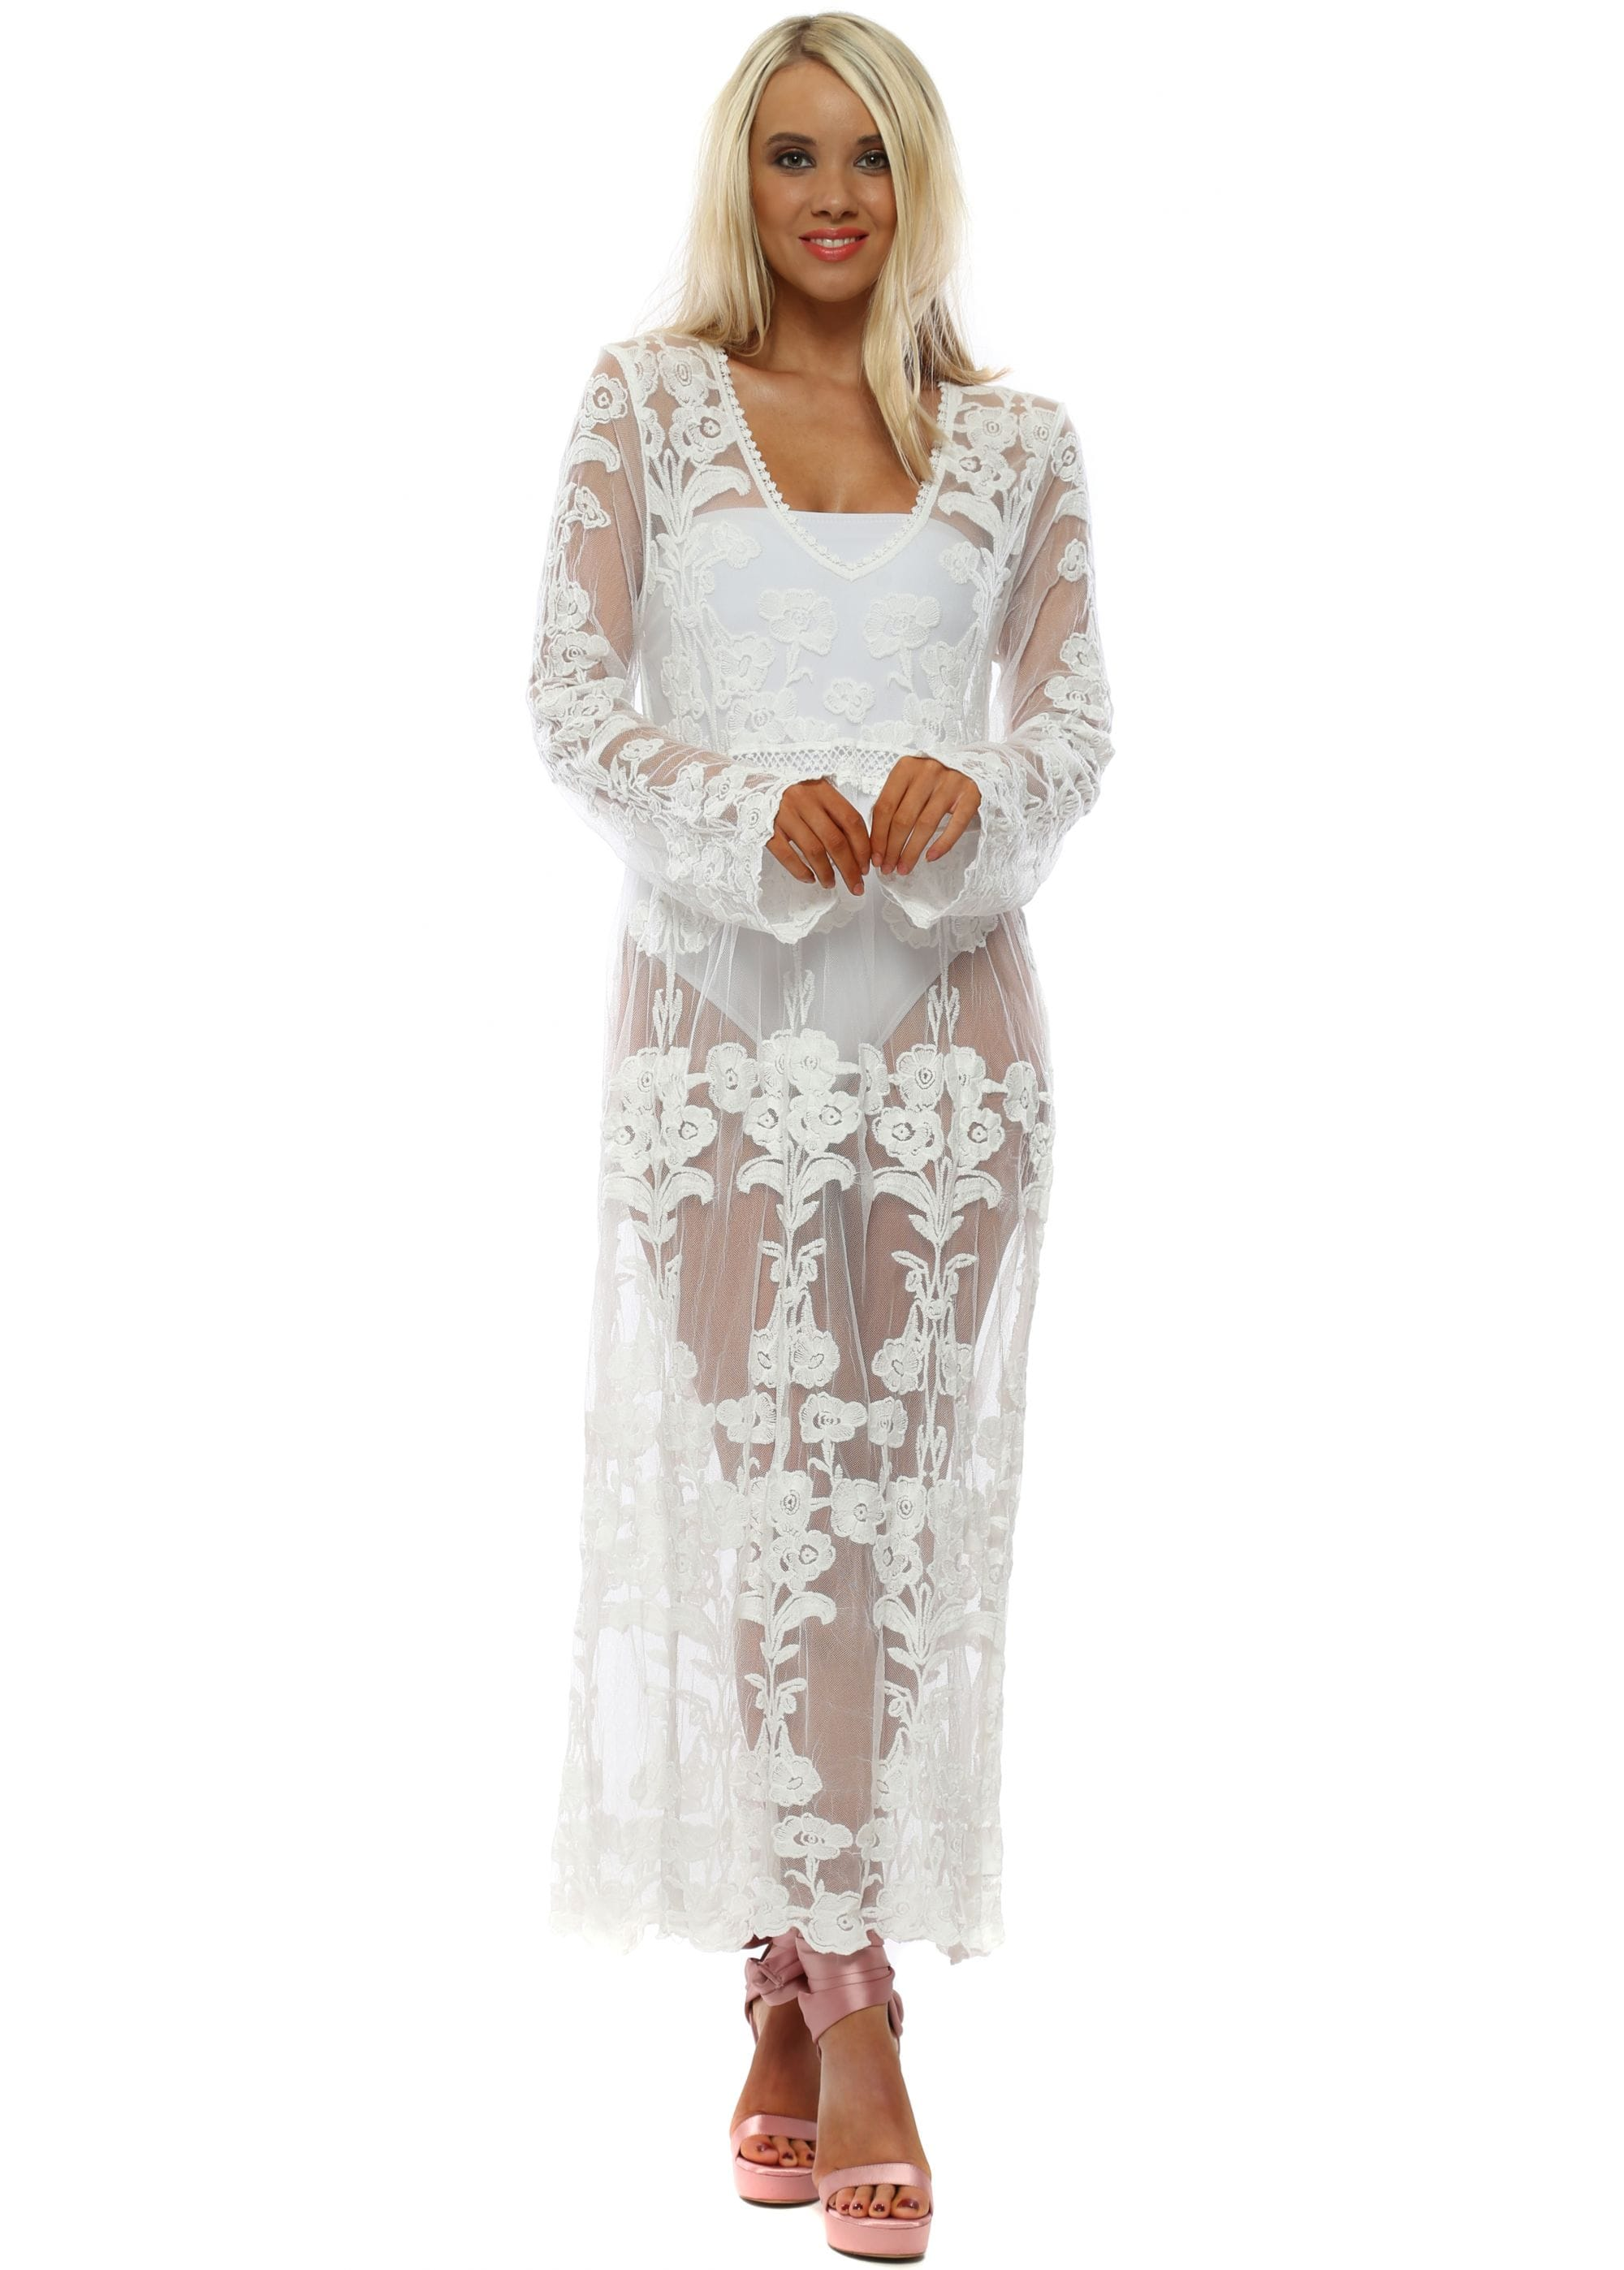 92ad2dfe0f4 Ivory Floral Embroidered Maxi Beach Dress